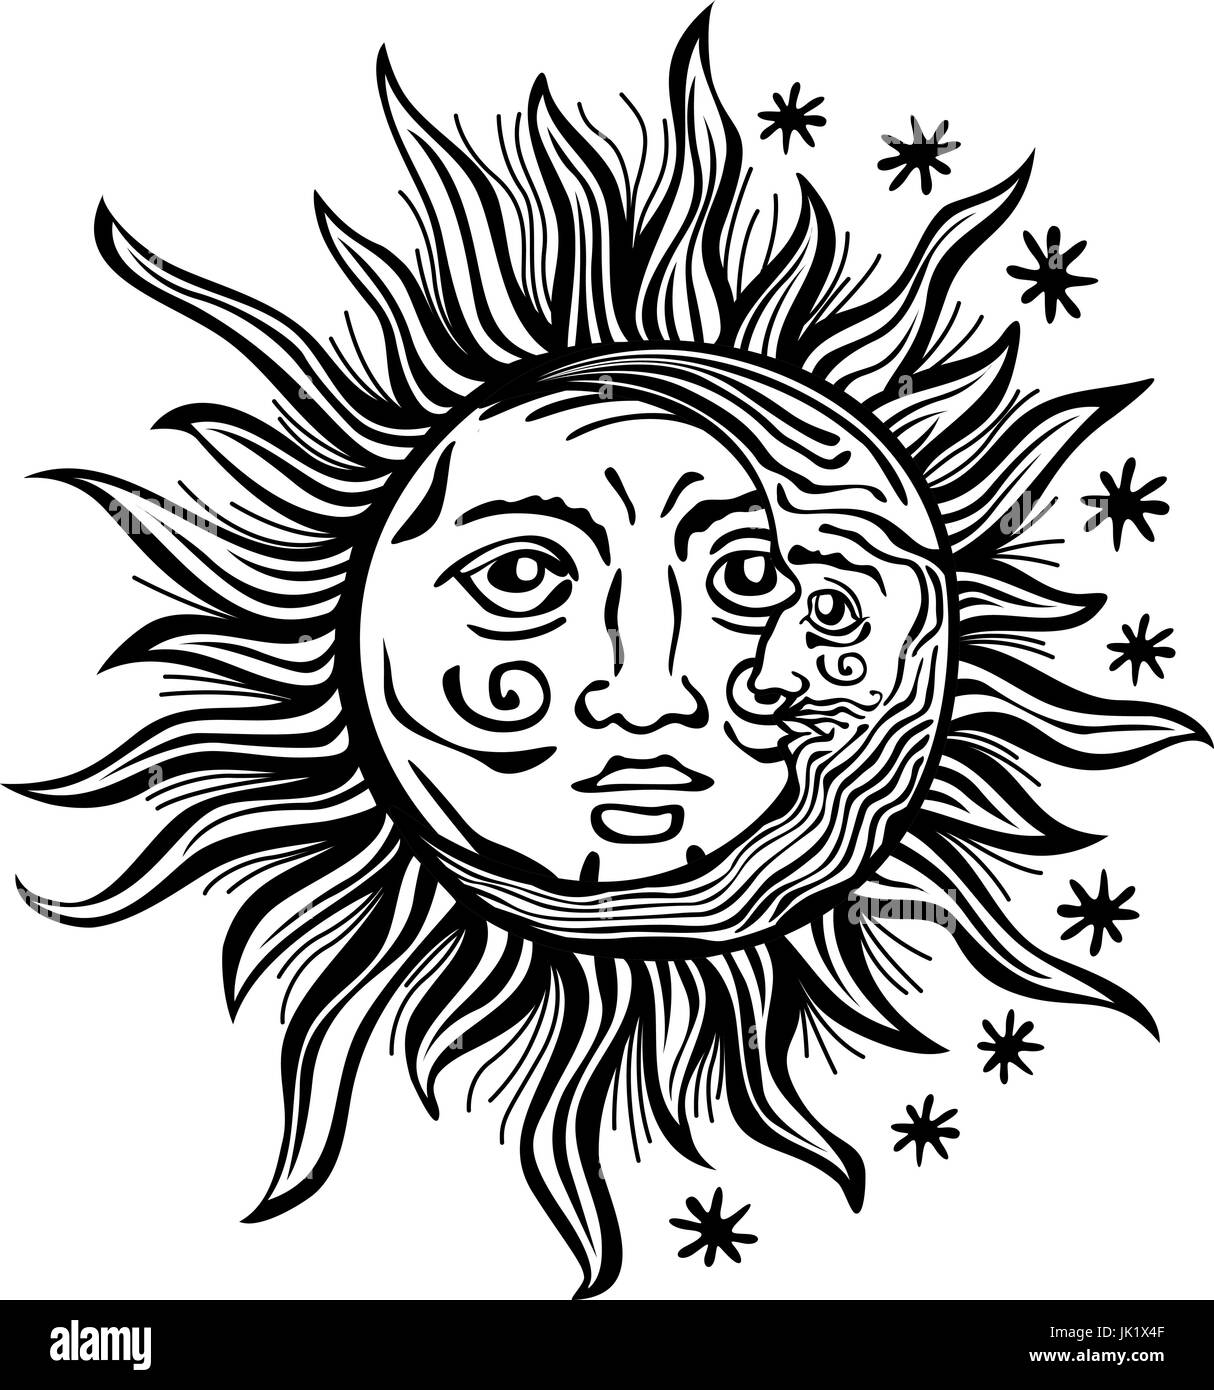 An Etched Style Cartoon Illustration Of A Sun Moon And Star With Human Faces Outlines Are Solid Black Transparent Background For Easy Re Col